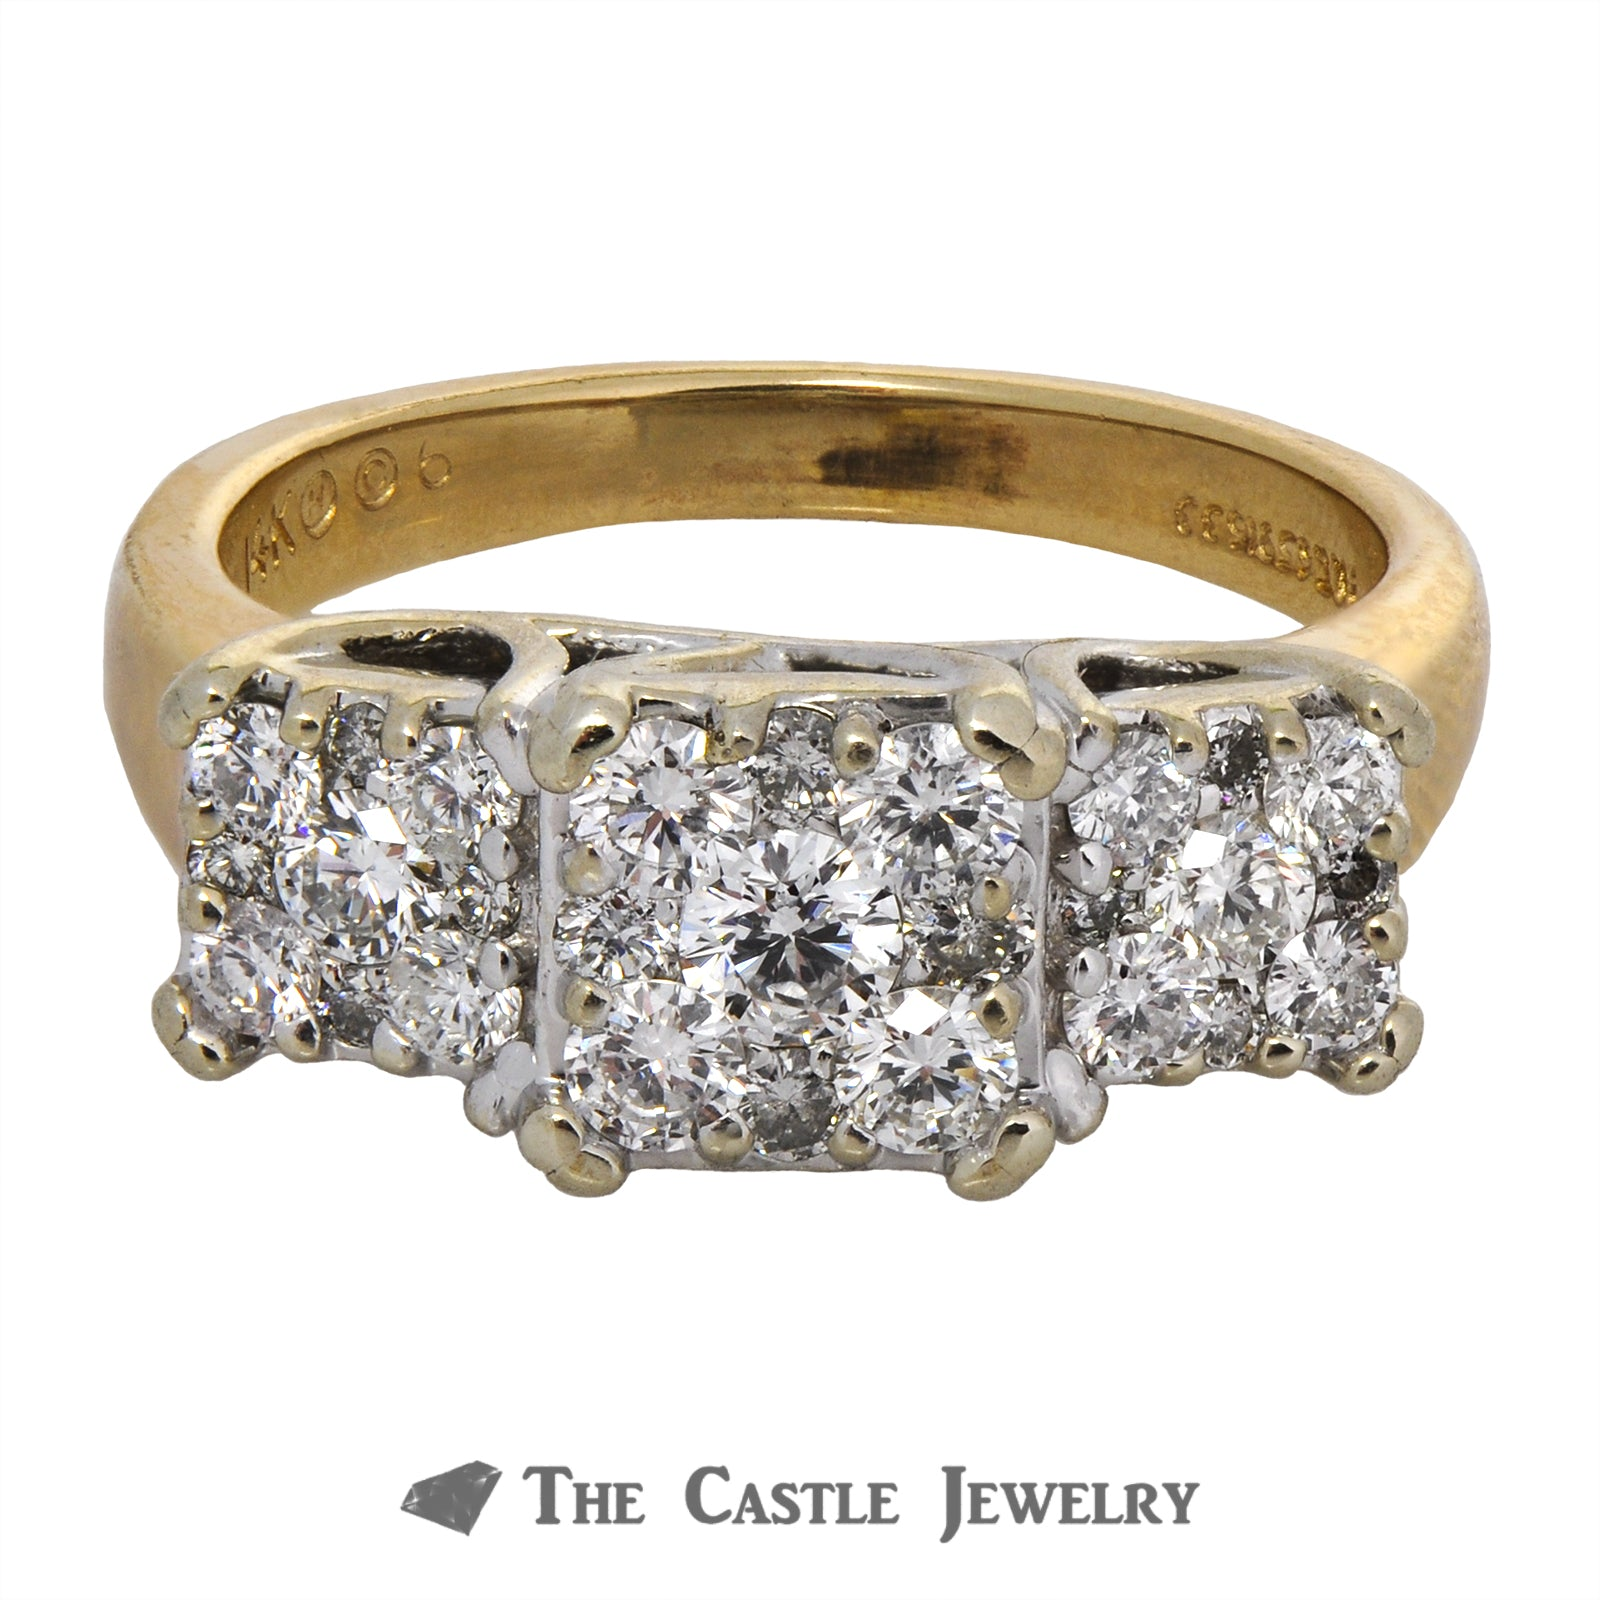 Square Cluster Engagement Ring 1cttw in 14K Yellow Gold